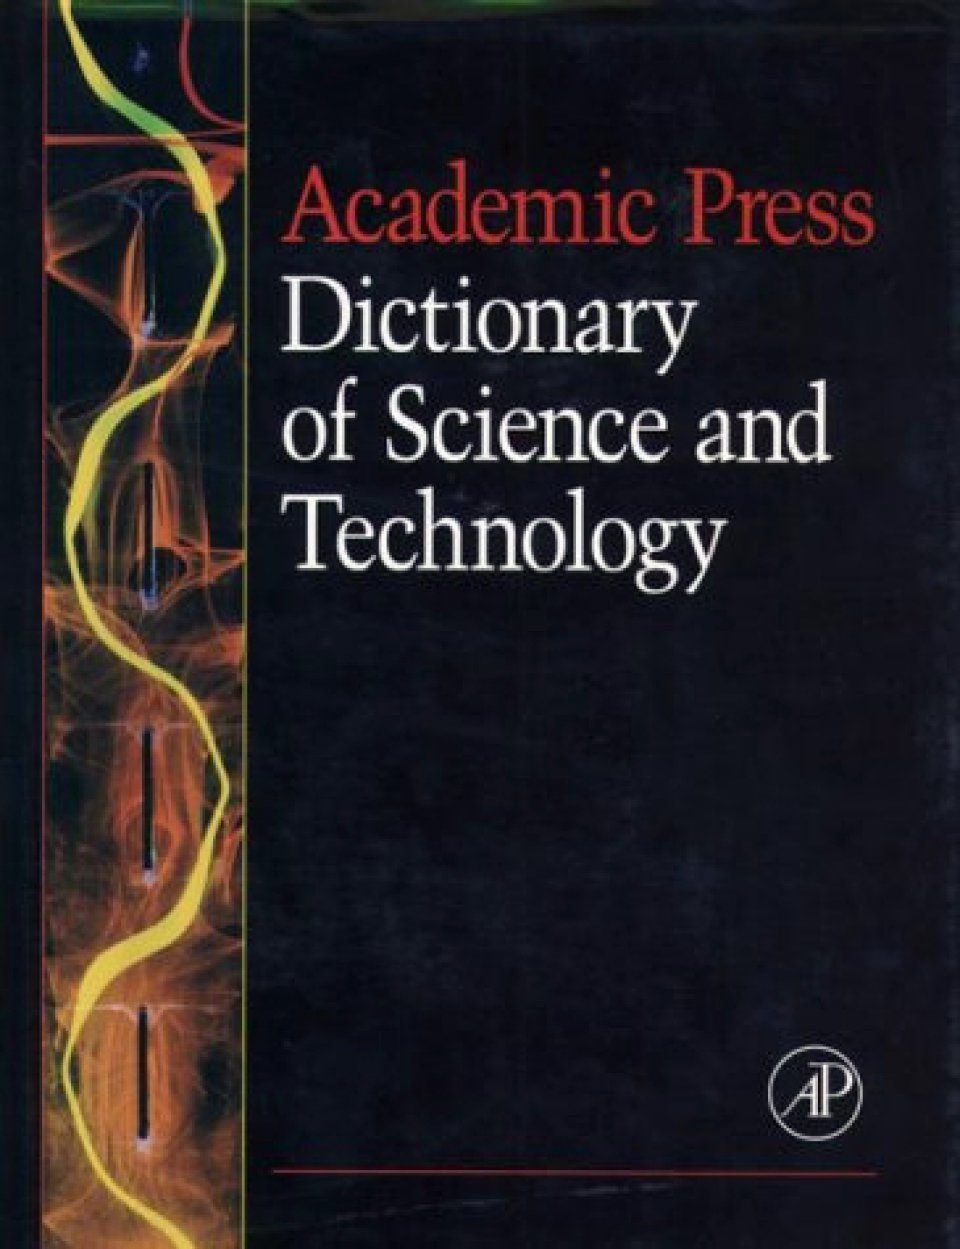 Academic Press Dictionary of Science and Technology